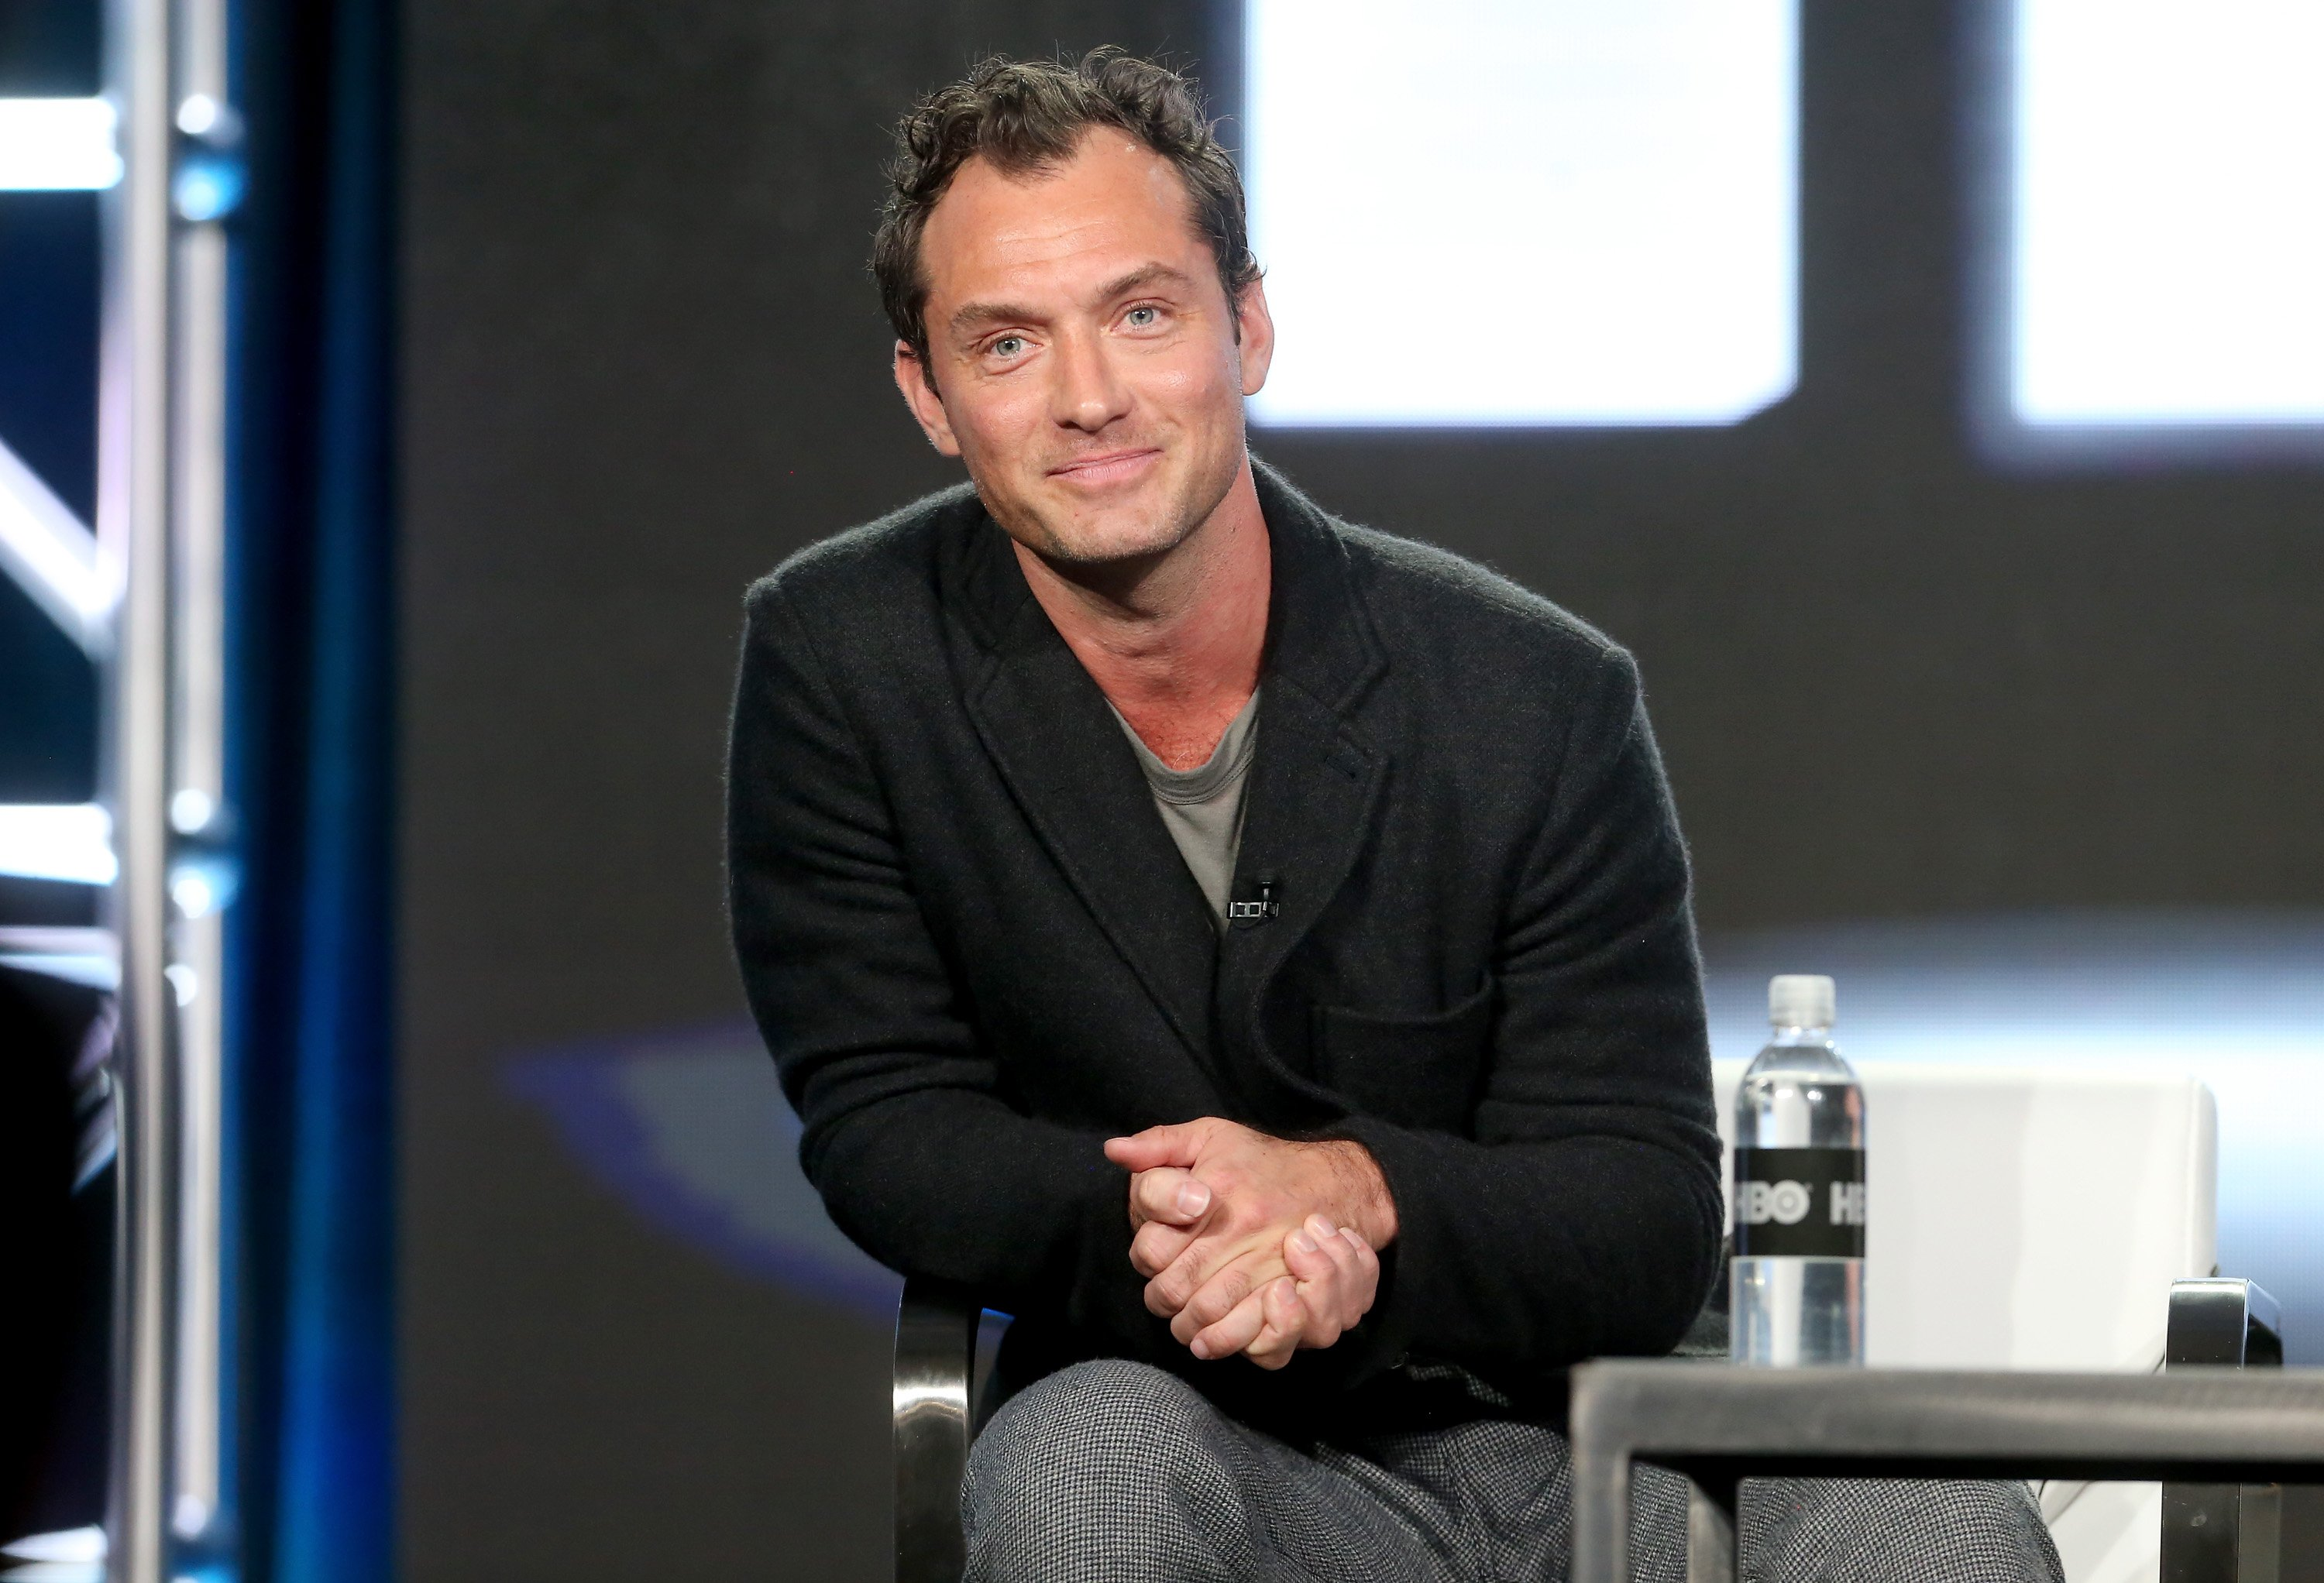 Jude Law of the series 'The Young Pope' speaks onstage during the HBO portion of the 2017 Winter Television Critics Association Press Tour at the Langham Hotel on January 14, 2017 in Pasadena